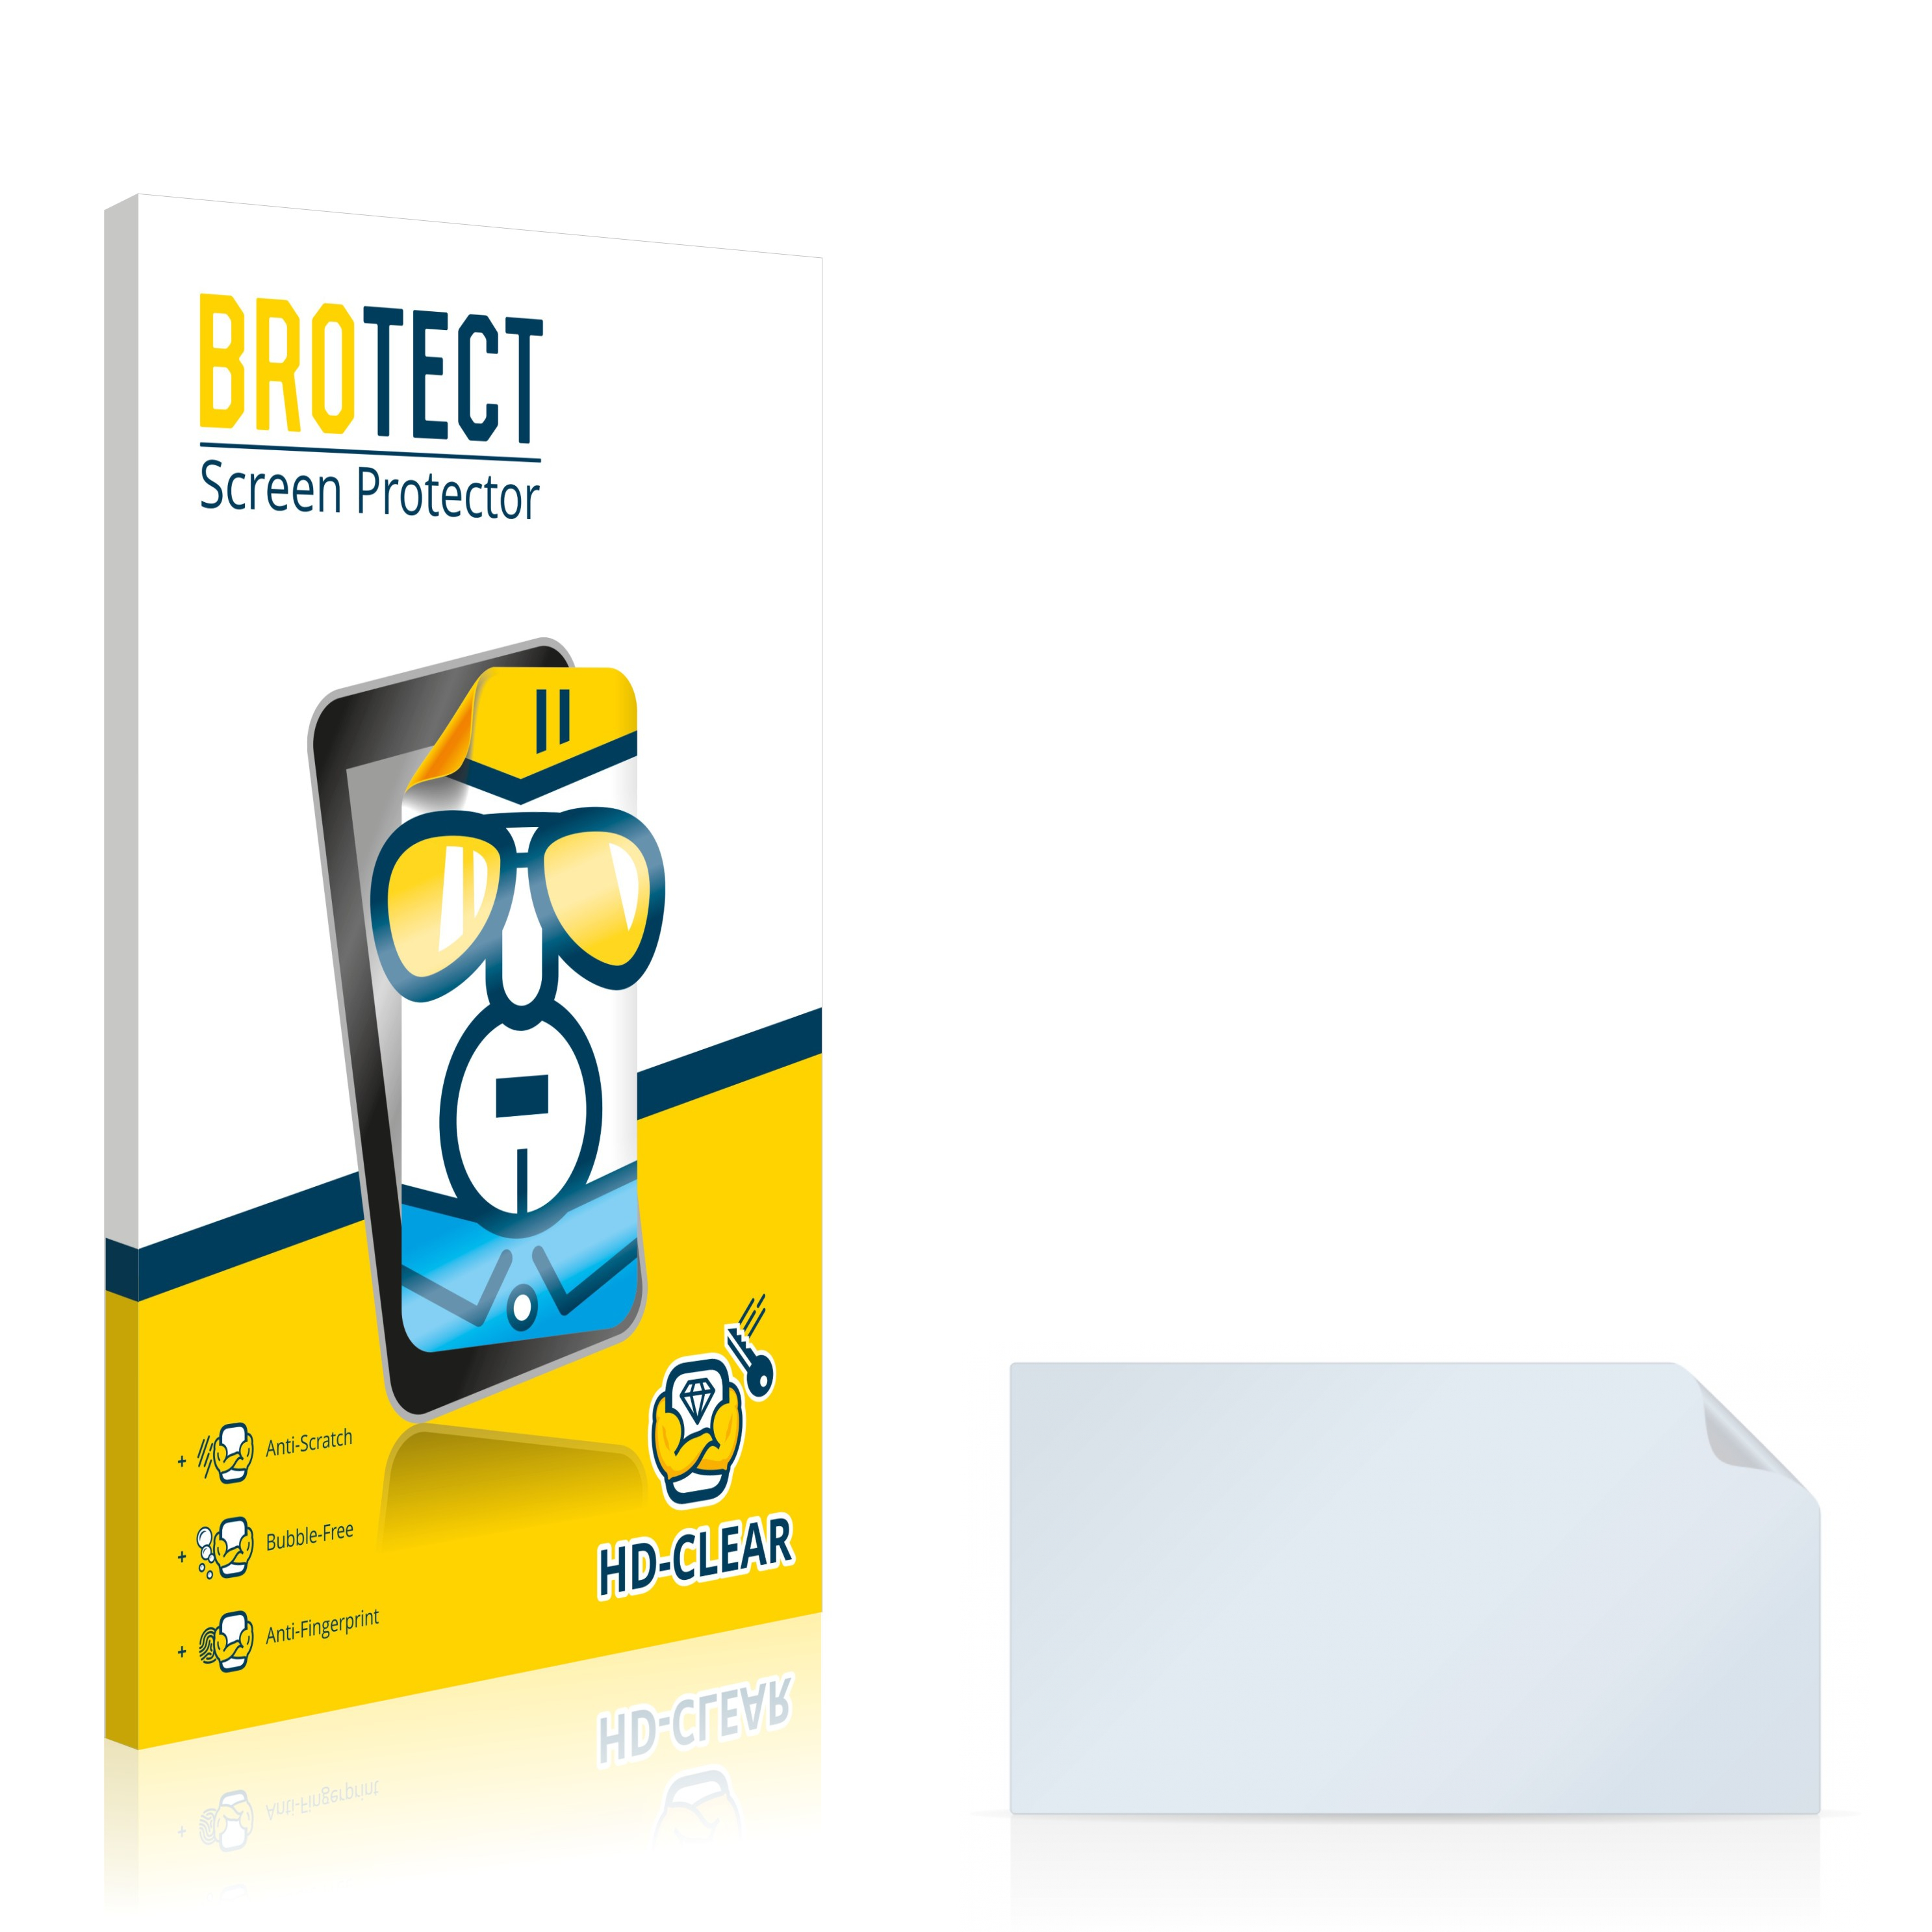 BROTECT Screen Protector for Samsung 600B5B HC1 Protection Film - Konstanz, Germany, Deutschland - Right of withdrawal 1. Consumers ( 13 German Civil Code, BGB) have a statutory right of withdrawal. 1.1 Cancellation instructions You can cancel your contractual declaration within one month without specification of reason - Konstanz, Germany, Deutschland